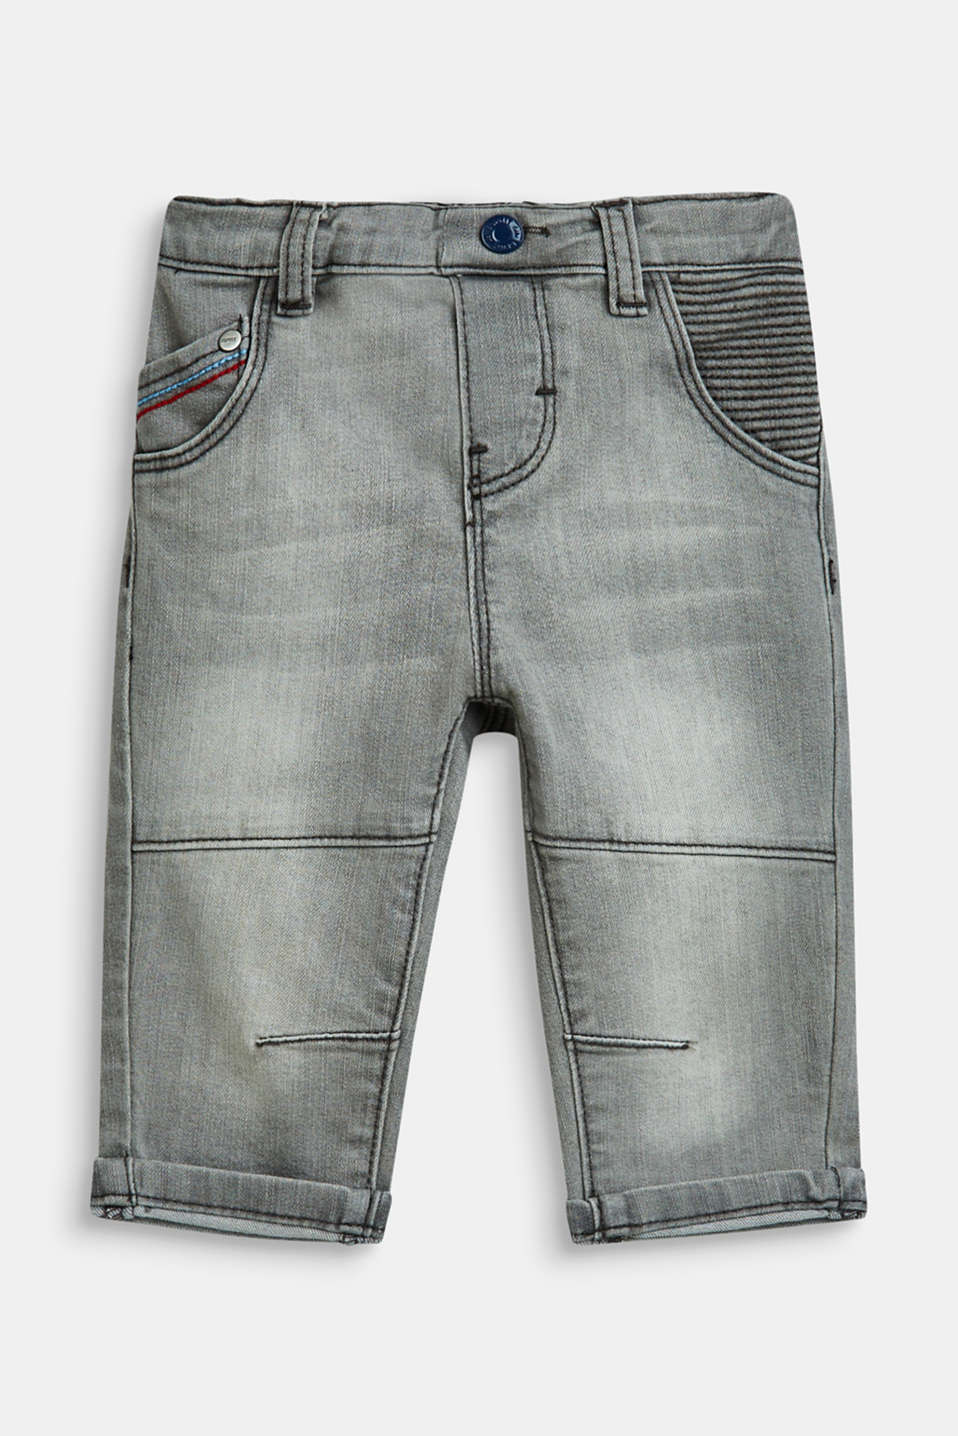 Esprit - Stretch jeans in a biker style with an adjustable waistband